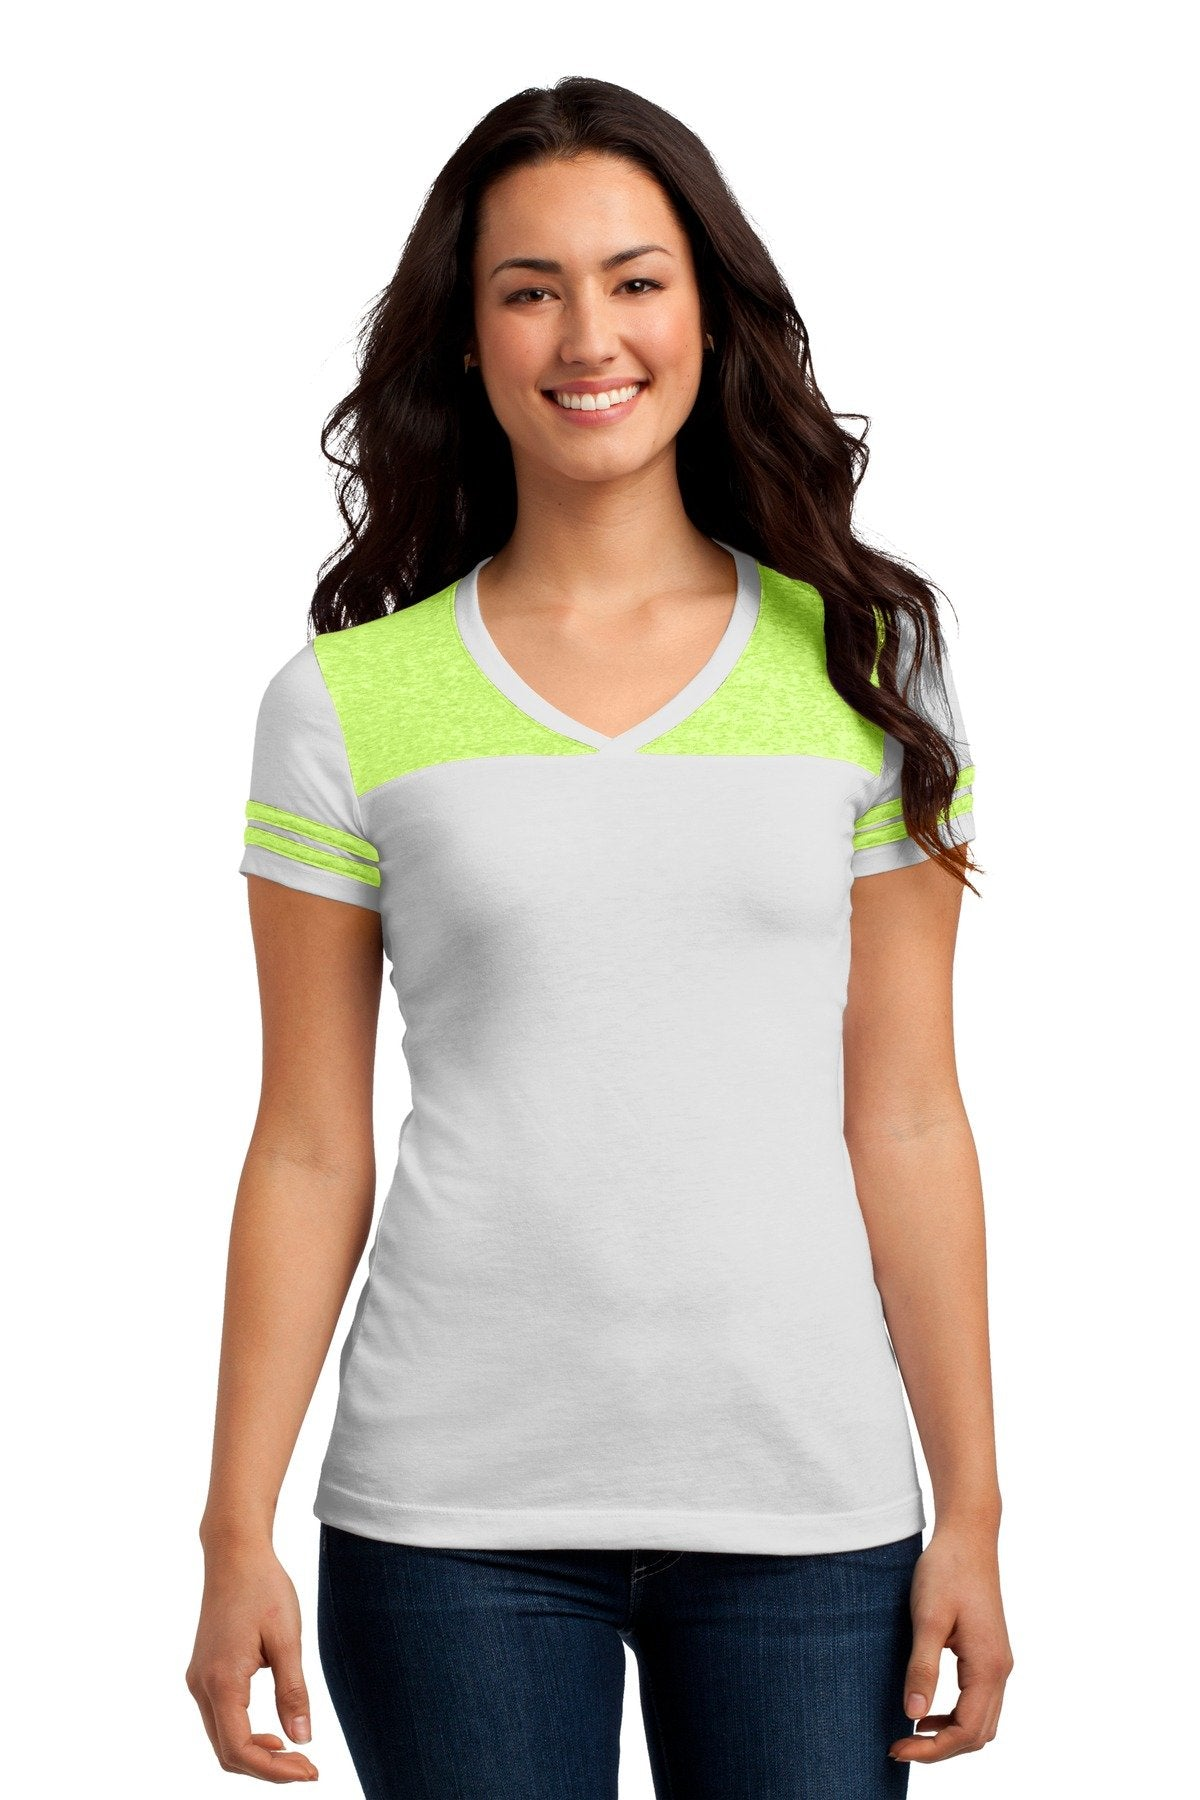 White/ Neon Lime - District DT264